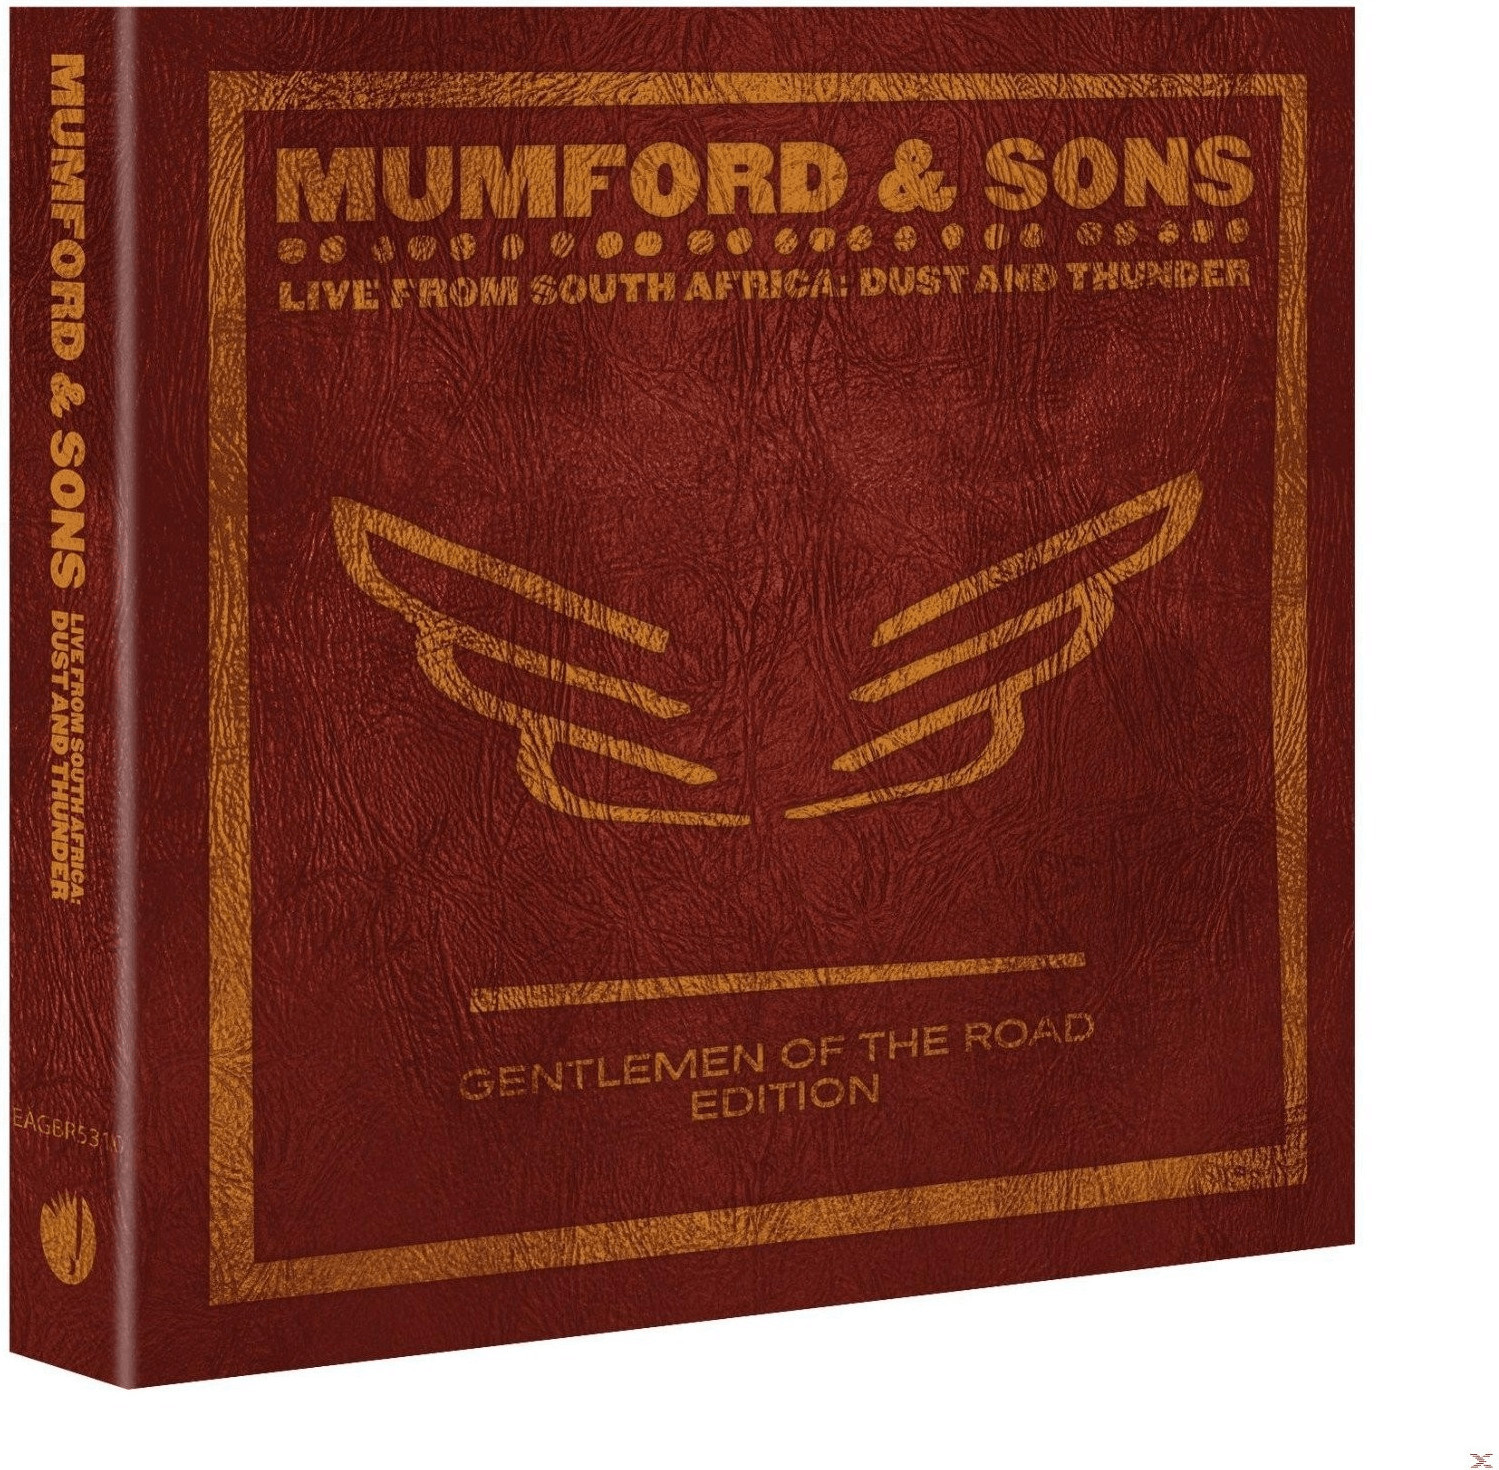 Image of Mumford & Sons - Live In South Africa: Dust And Thunder (Gentlemen of the Road Edition) [CD + DVD]